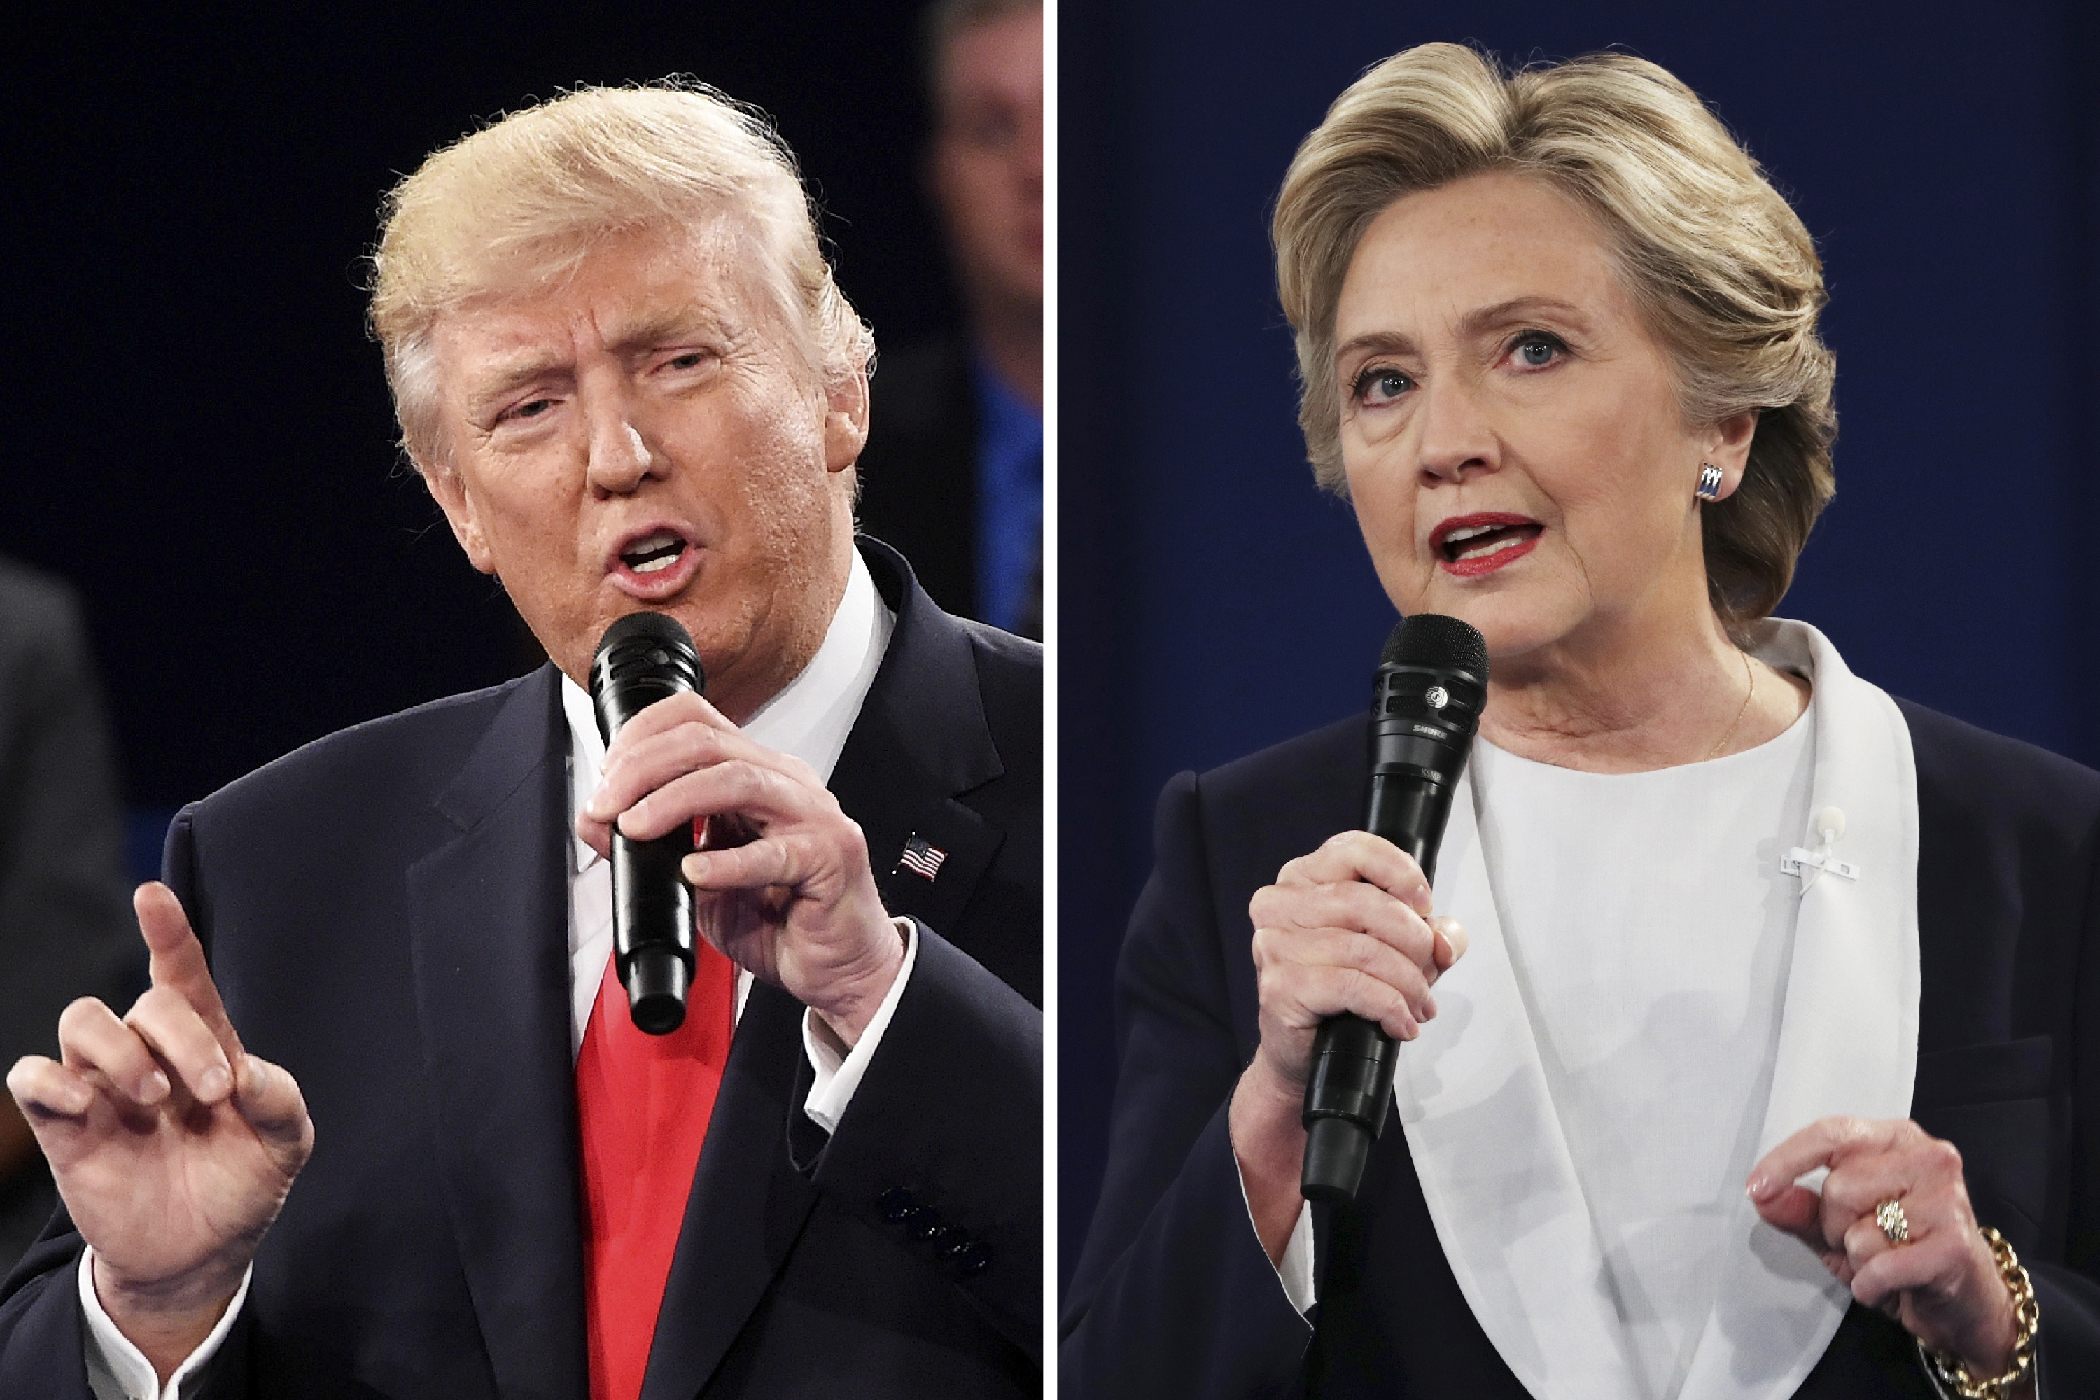 WATCH: Clinton & Trump Talk Health Care and Taxes at the 2nd Presidential Debate